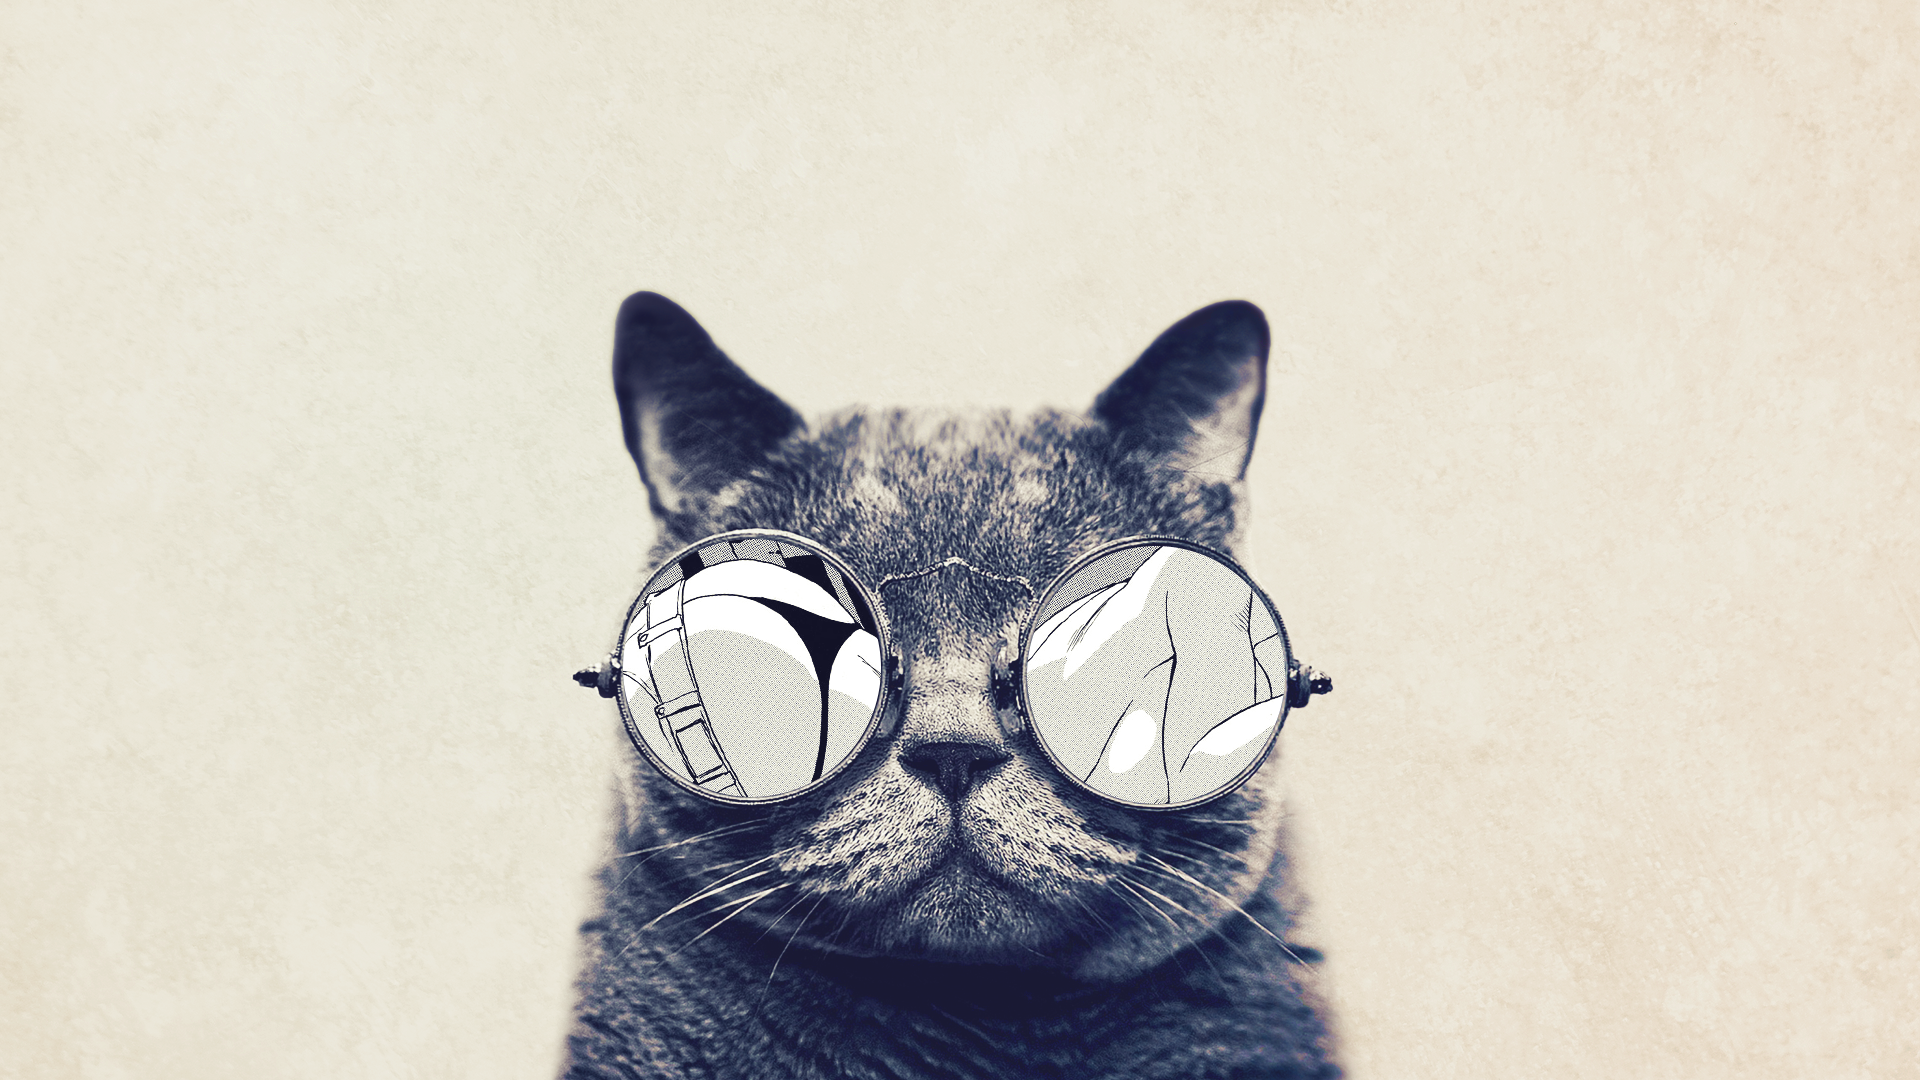 General 1920x1080 cats glasses animals beige frontal view simple background